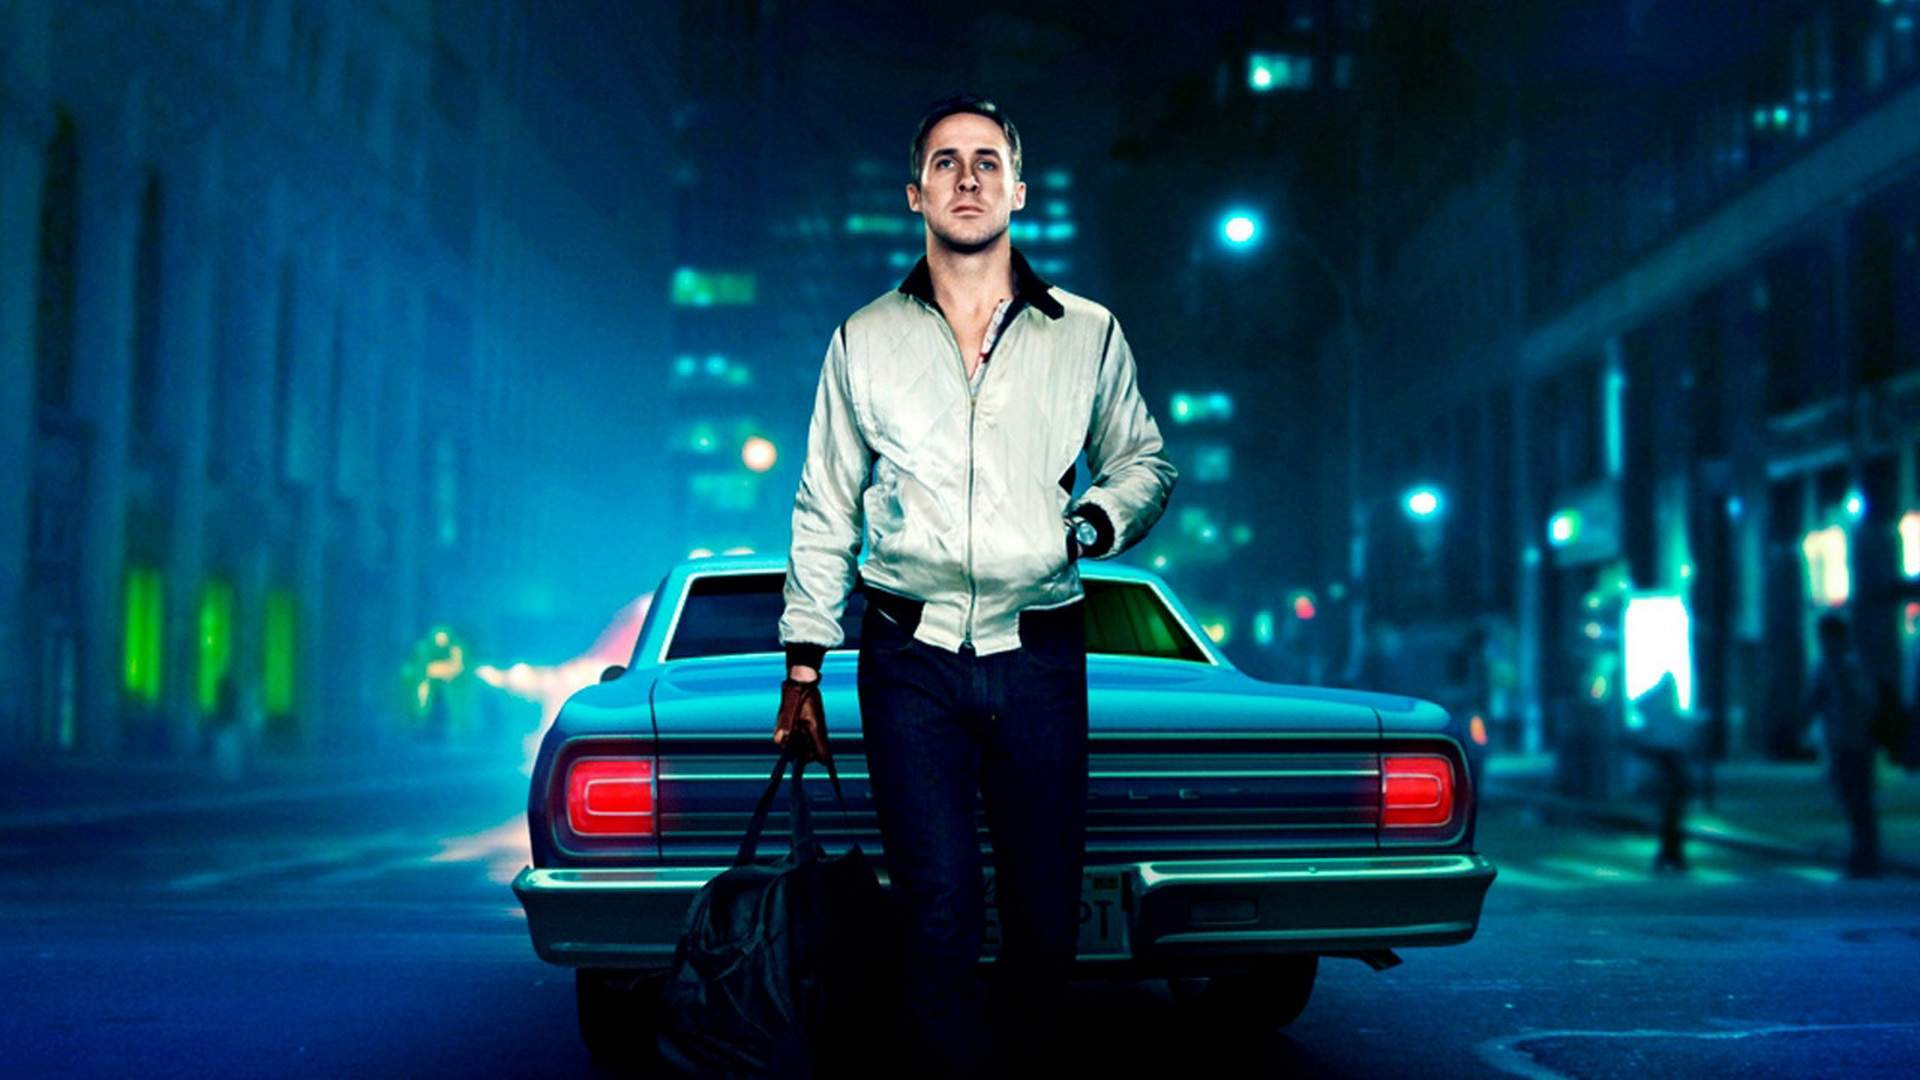 'Drive' Director Nicolas Winding Refn Has Launched His Own Free Streaming Service